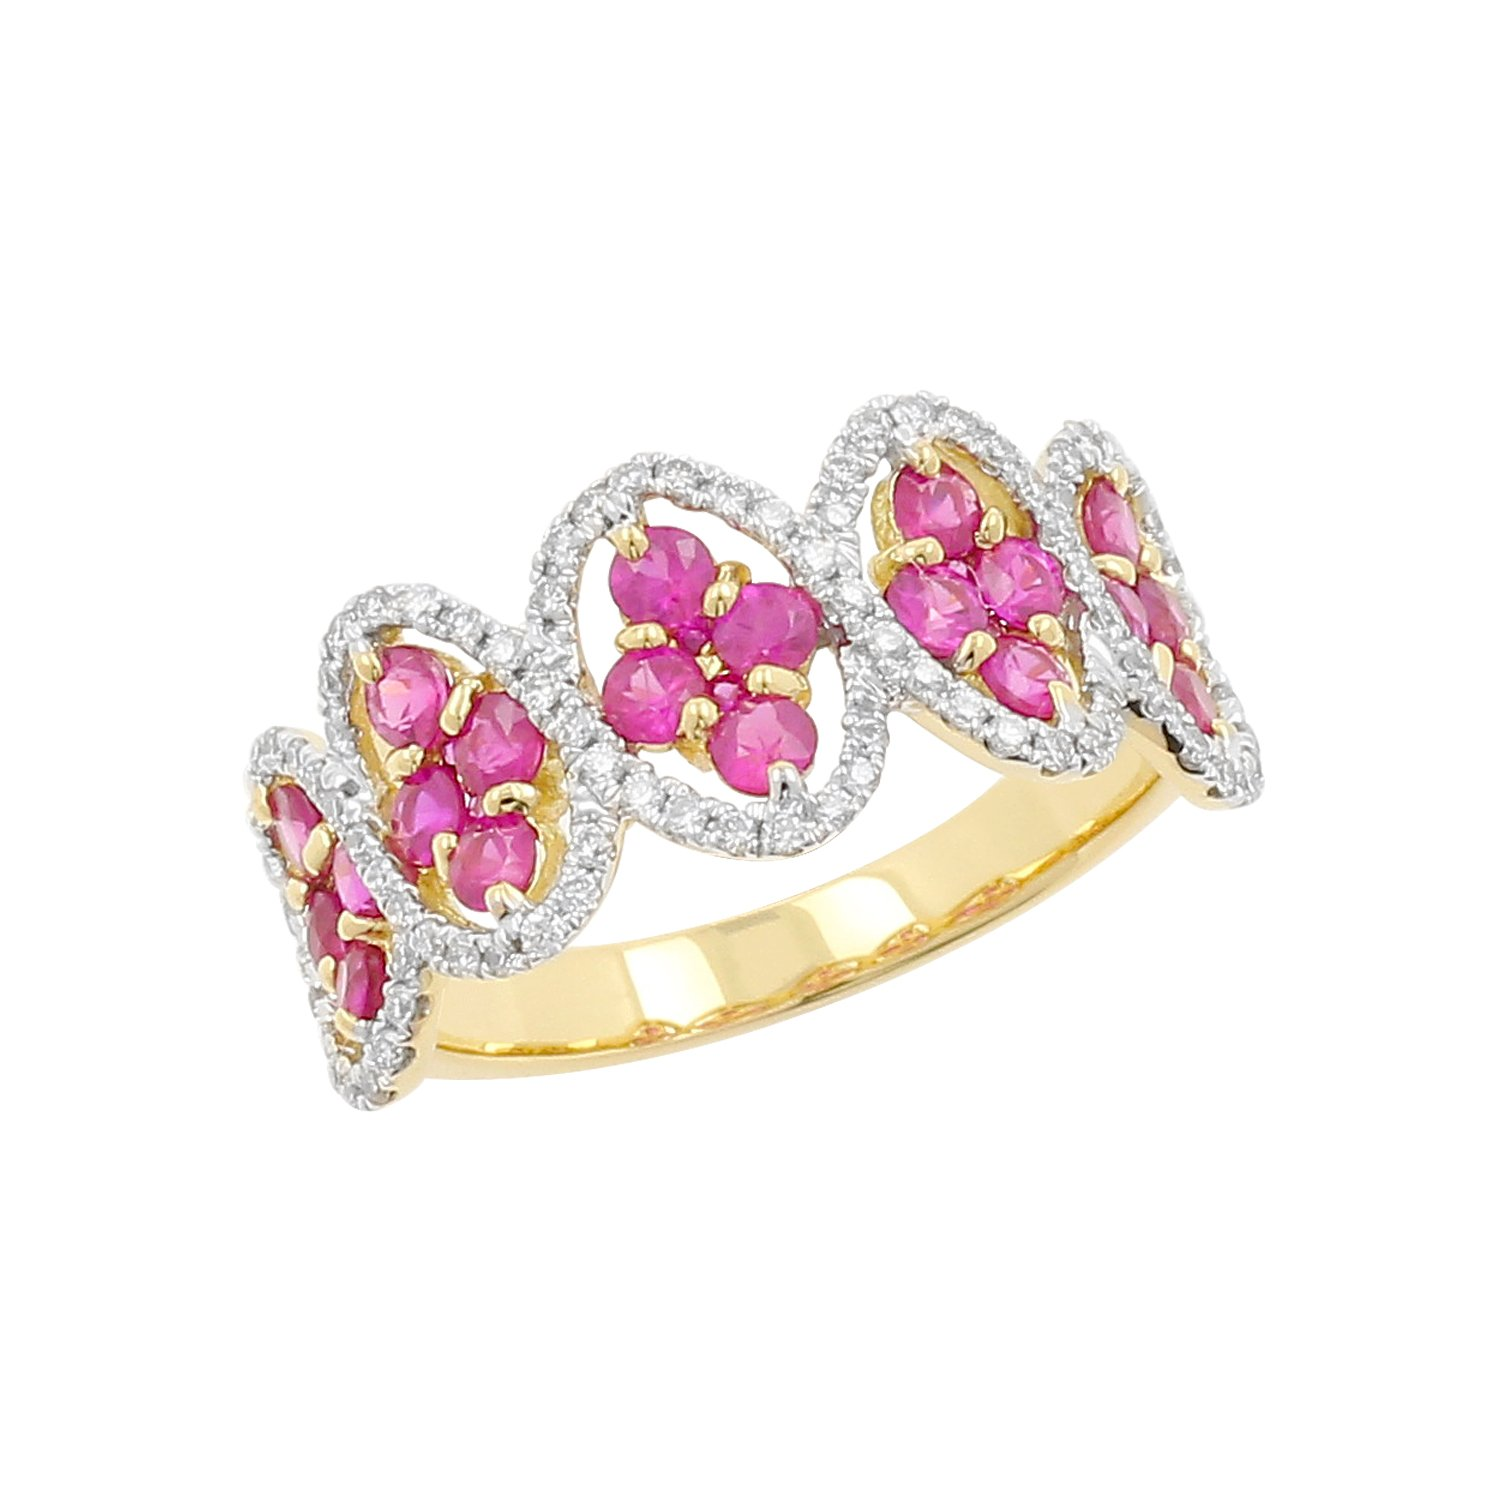 18kt Yellow Gold Ruby and Diamond Fashion Ring, Size-6.5